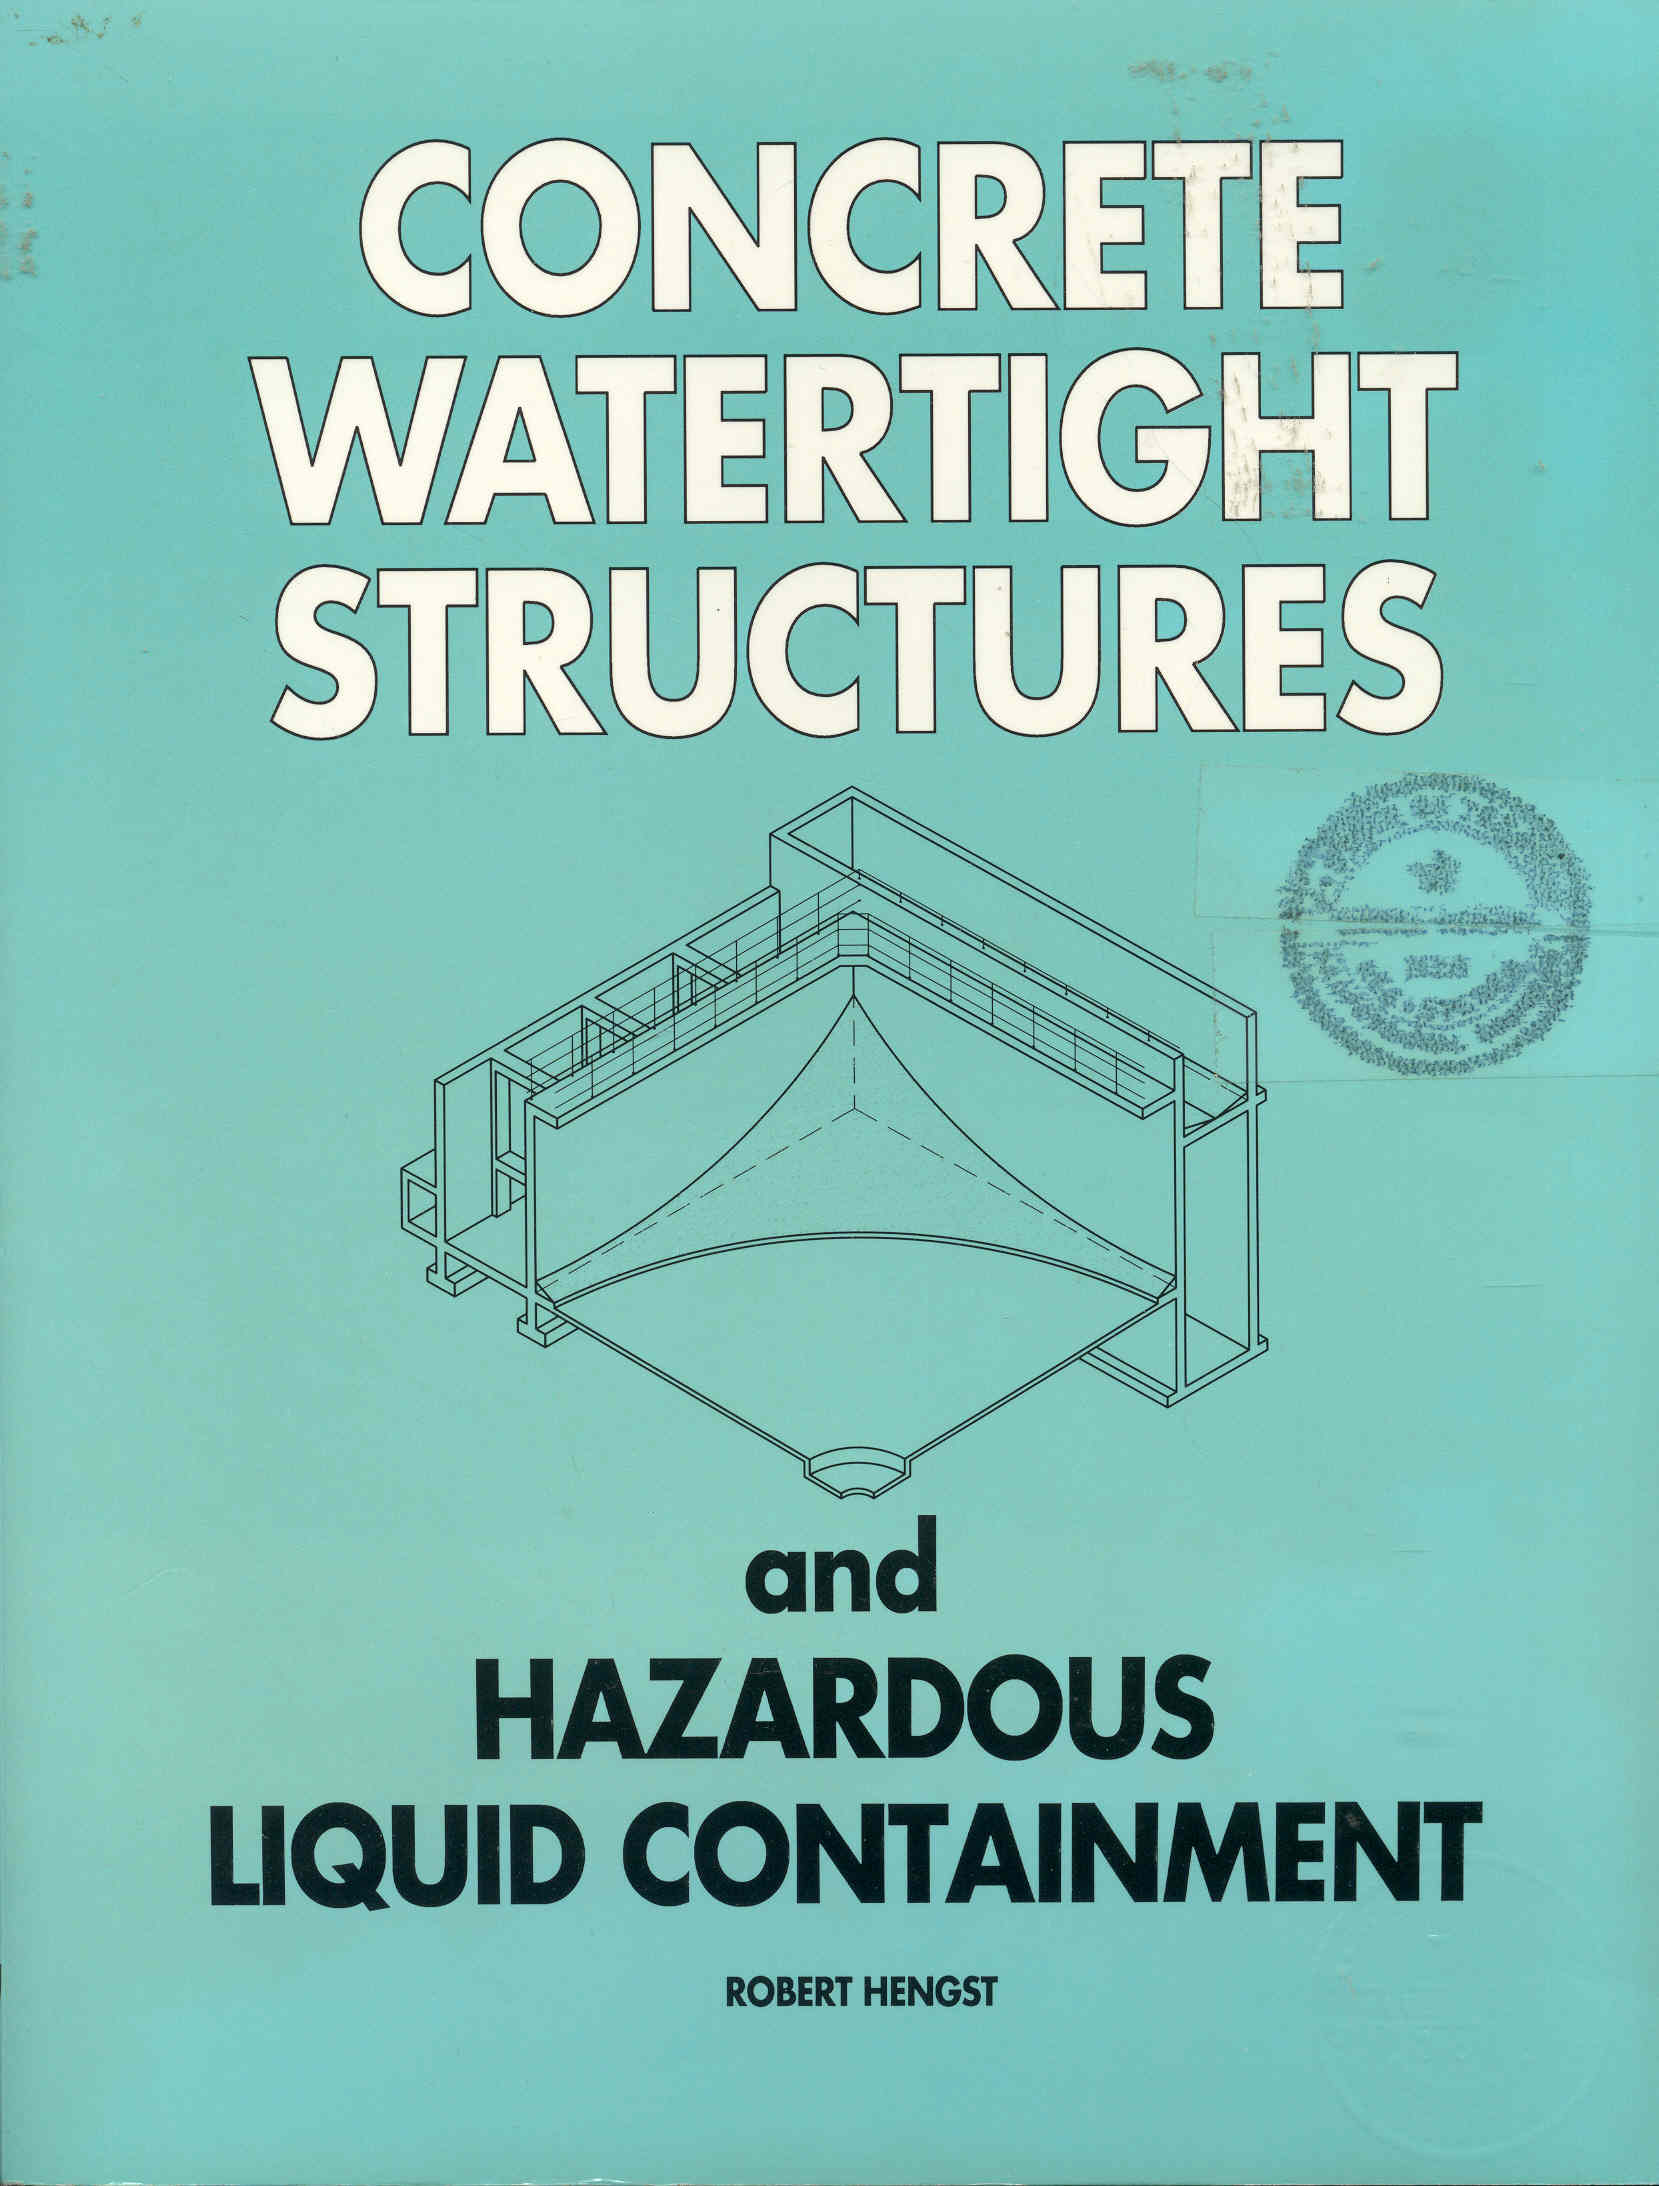 Image for Concrete Watertight Structures and Hazardous Liquid Containment